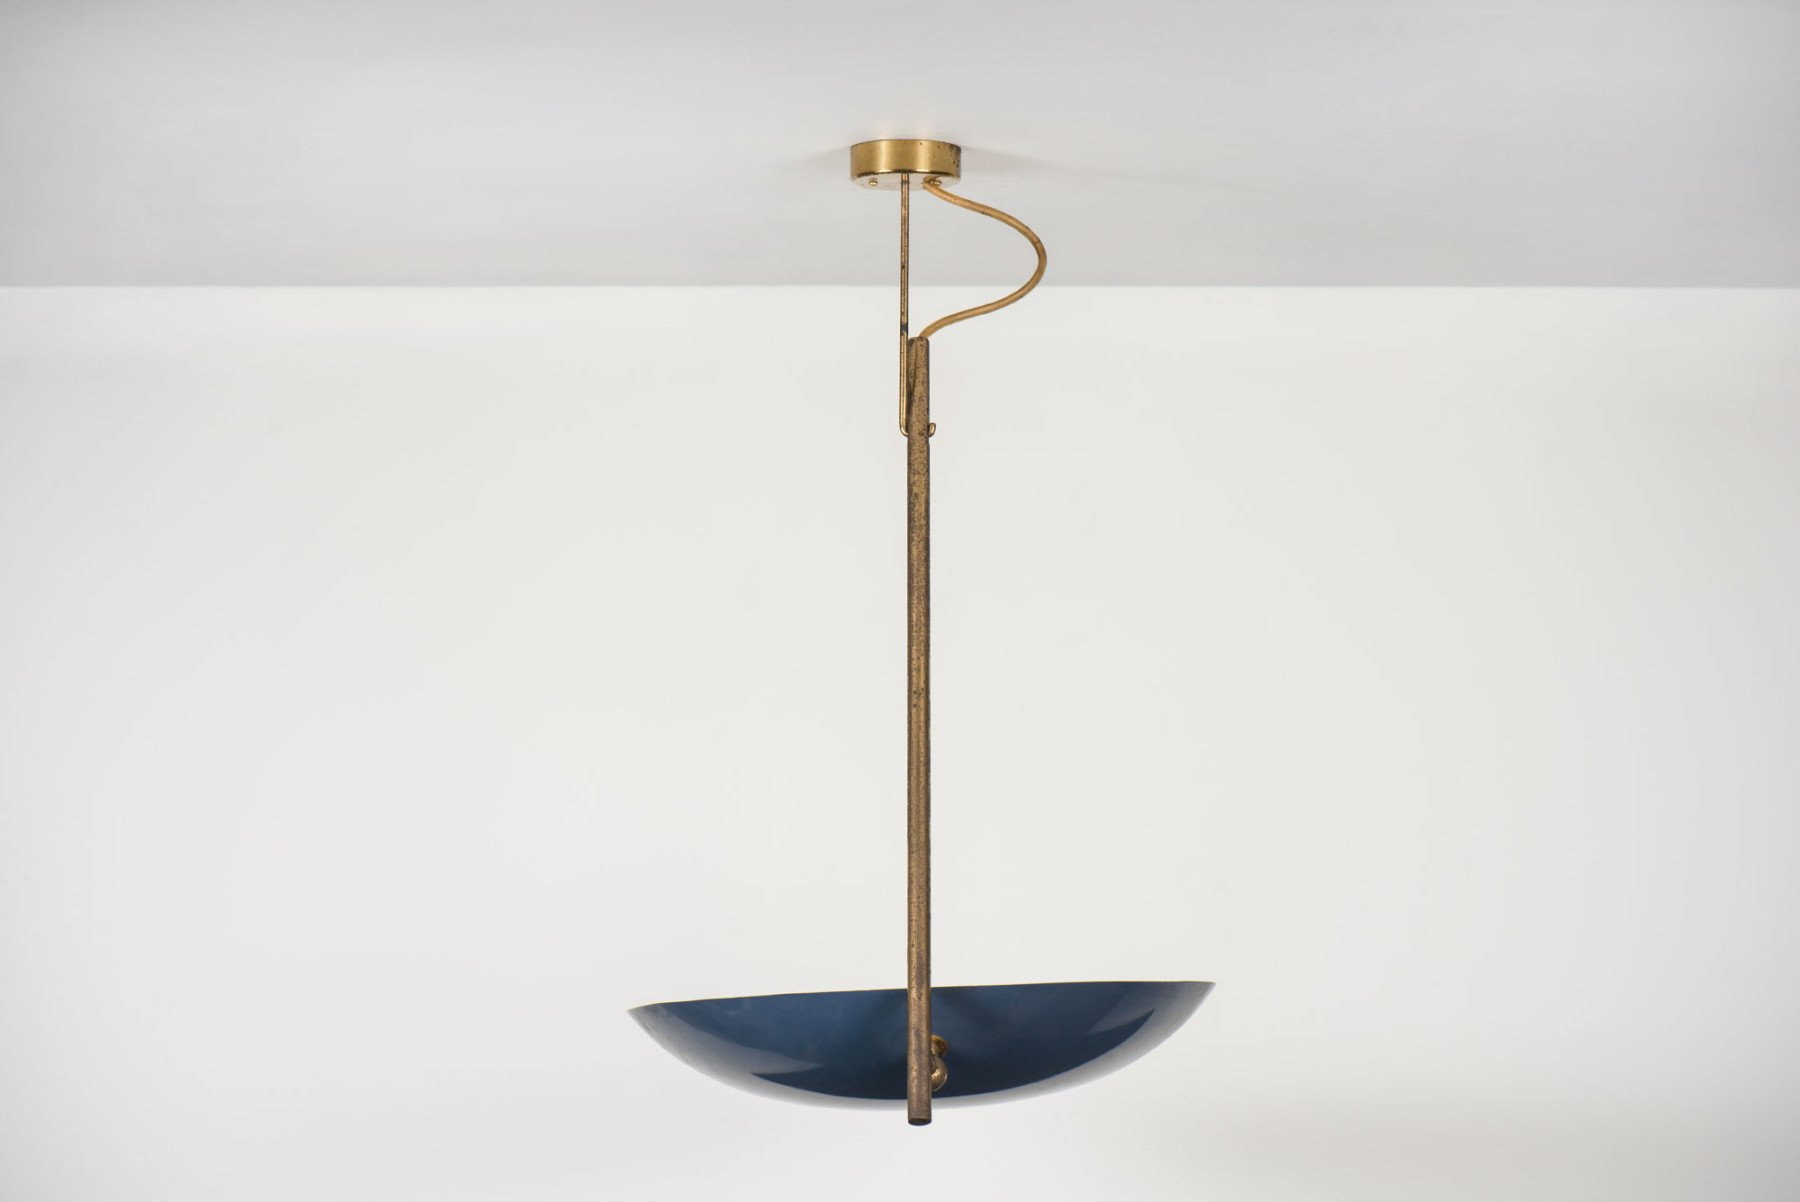 Vittoriano Viganò |   Ceiling light, model 2059